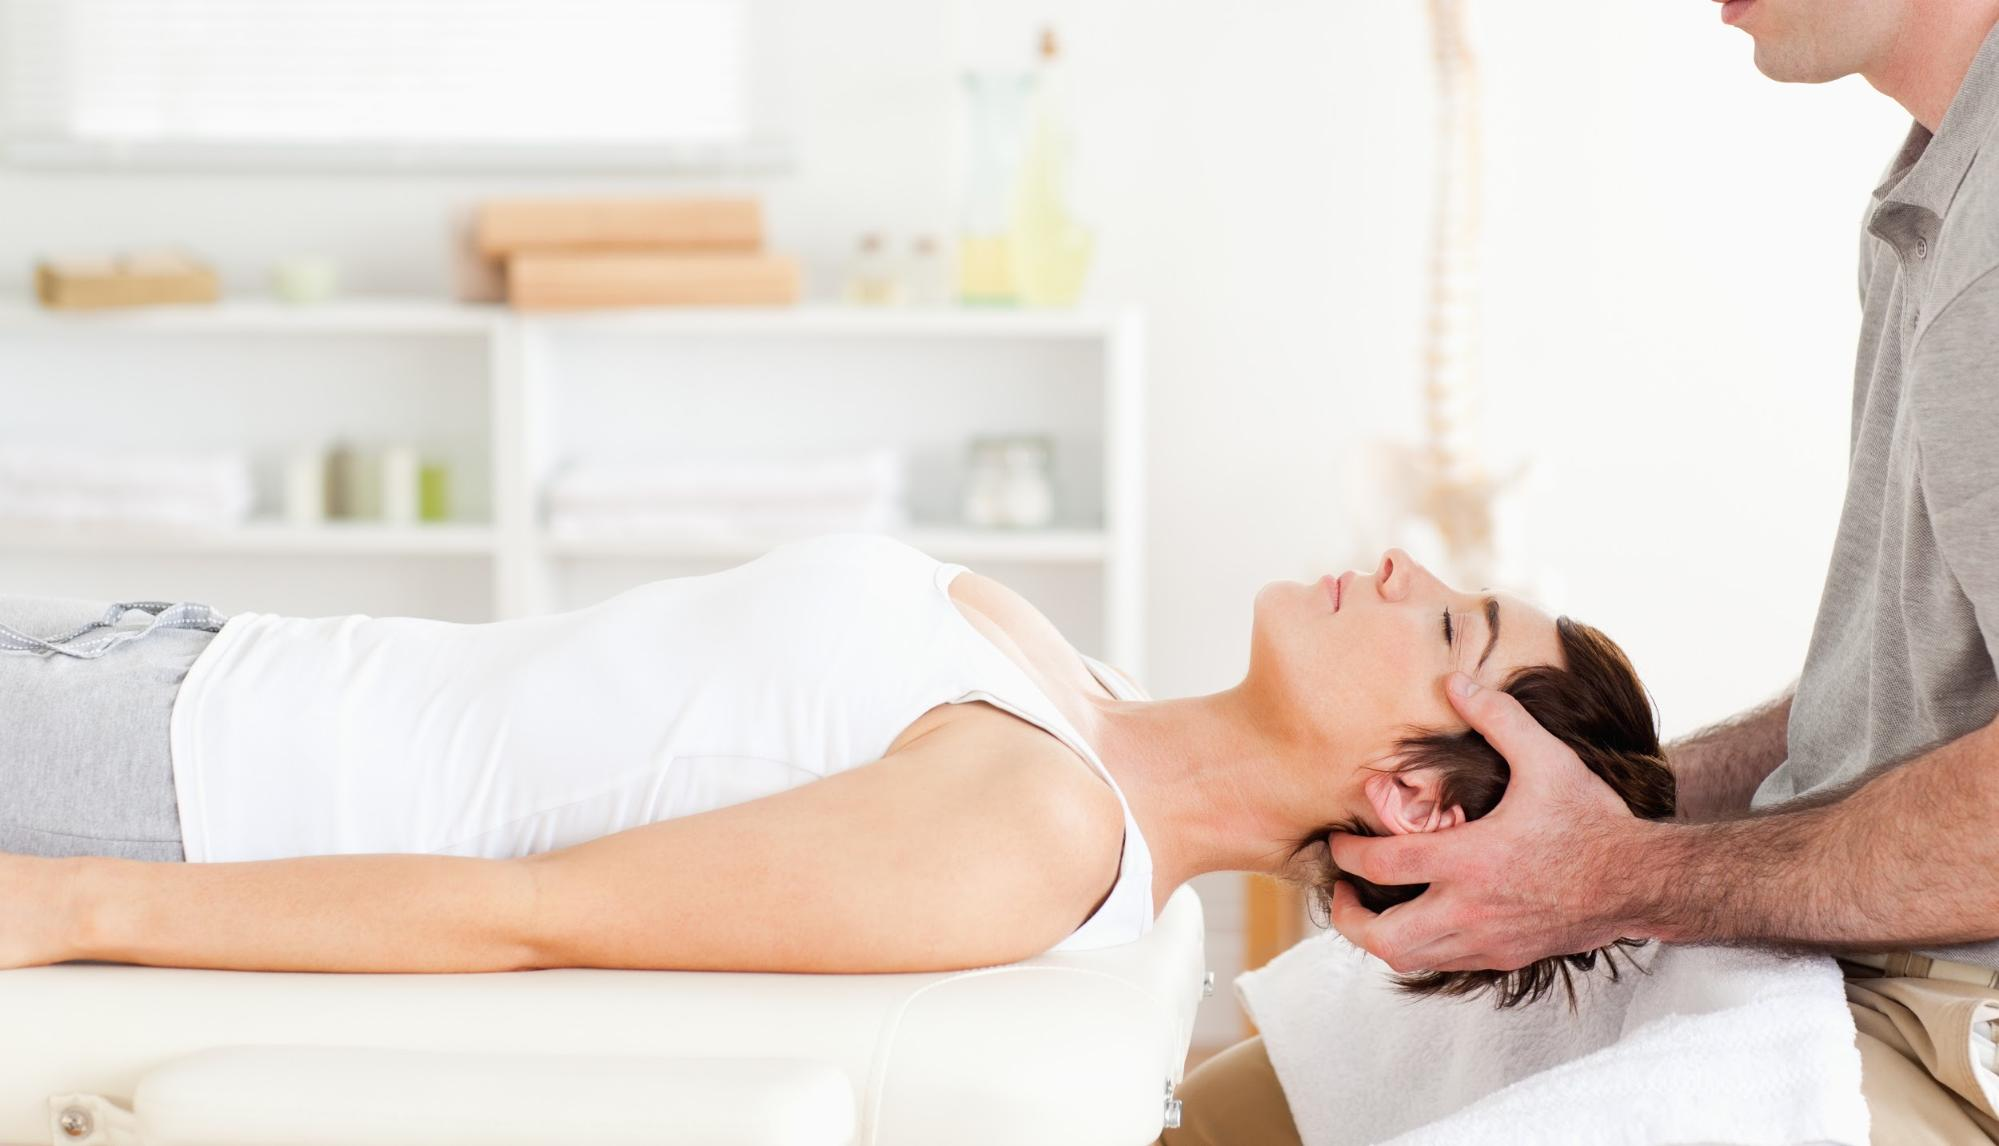 Chiropractor stretching a woman's neck